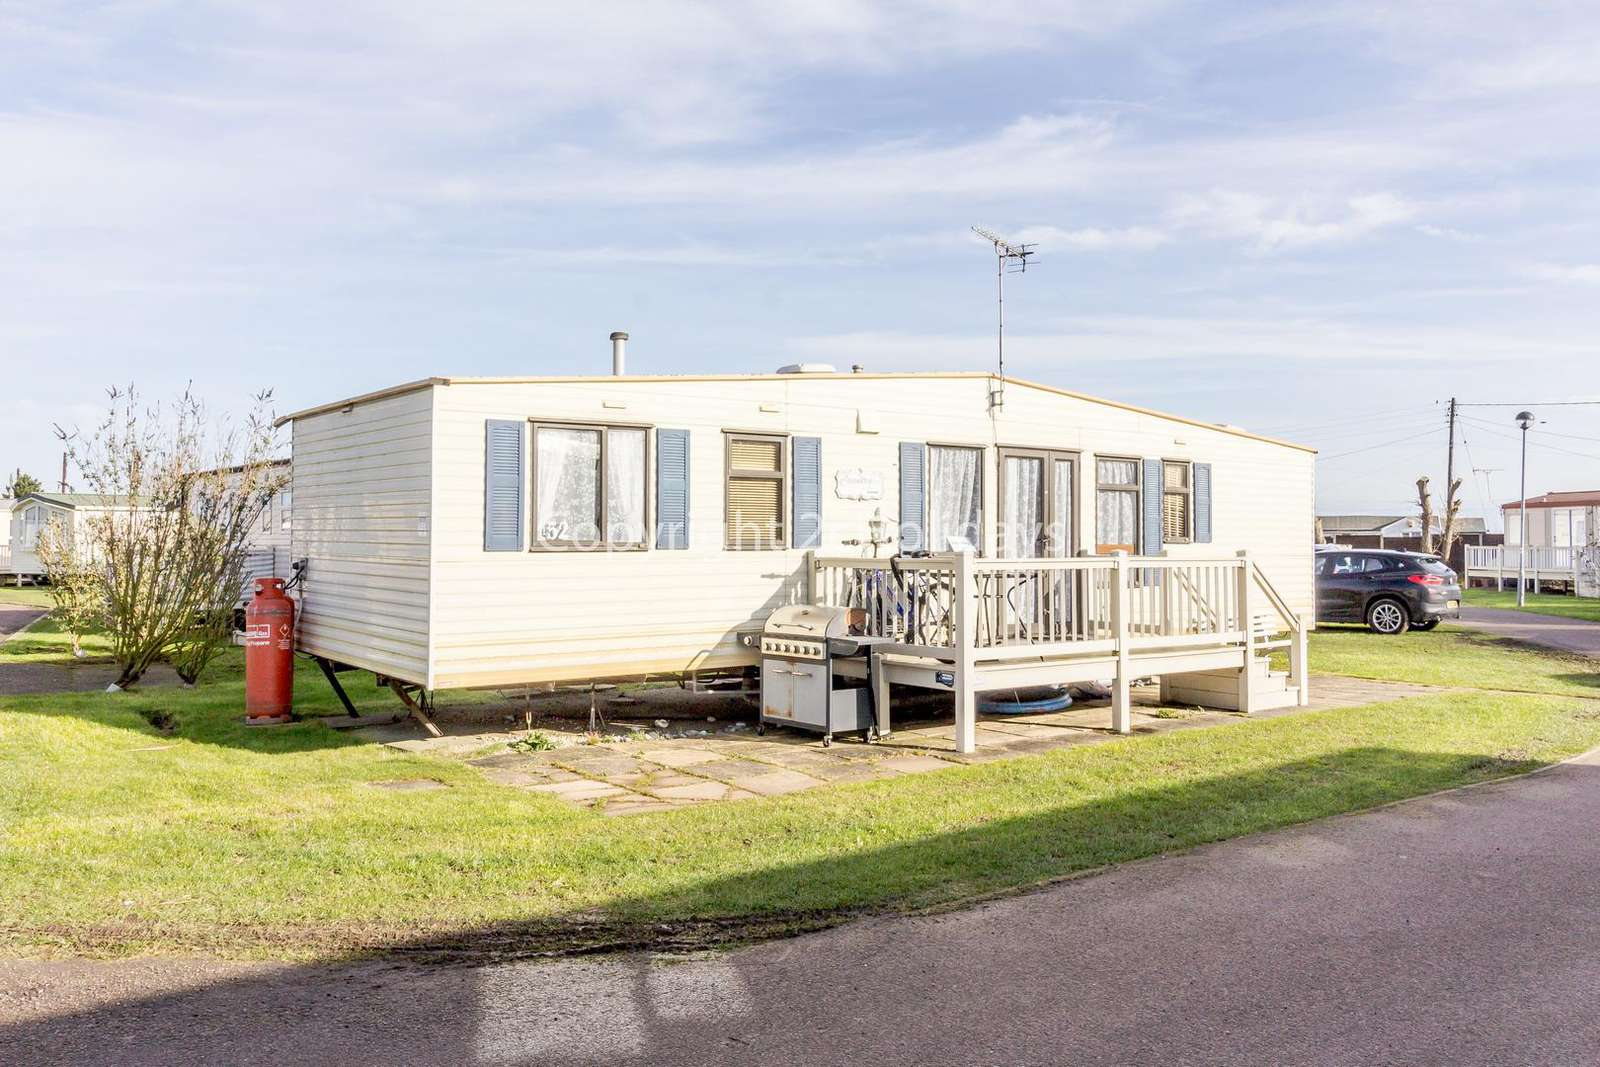 So many families have enjoyed staying at California Cliffs Holiday Park